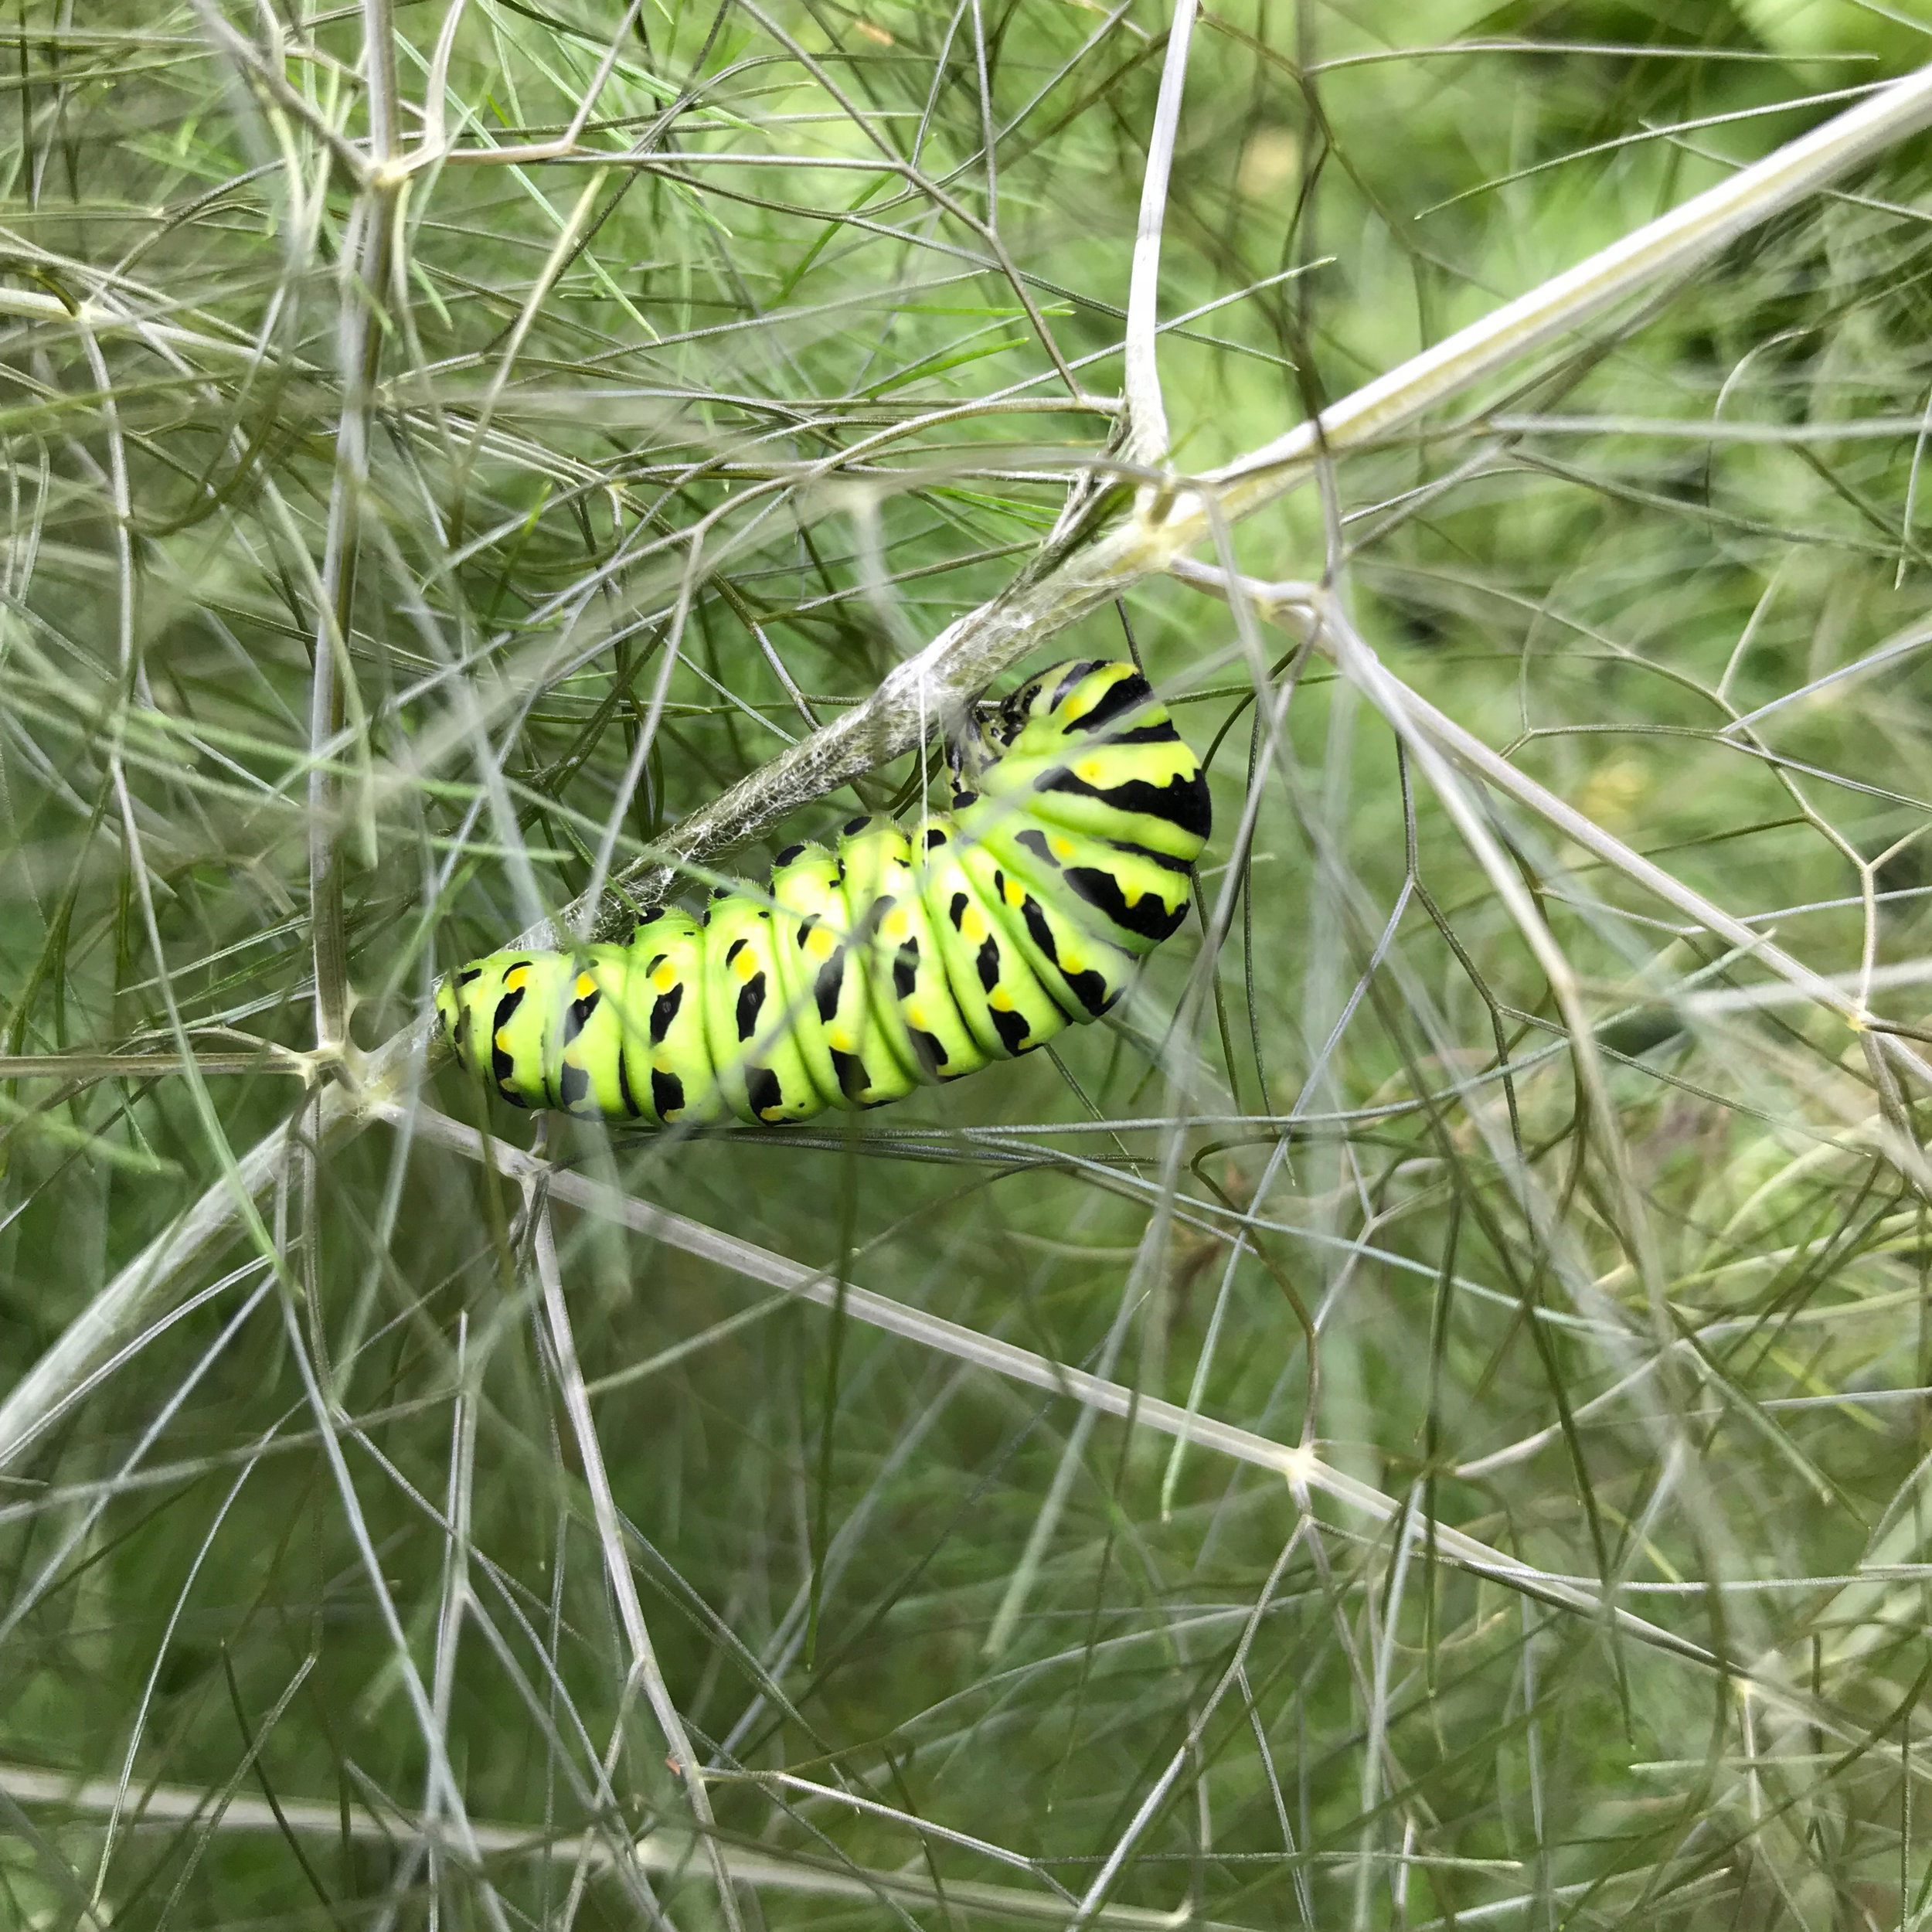 A Black Swallowtail Caterpillar Attached to a Stem of Fennel with a Silk Thread and Getting Ready to Pupate